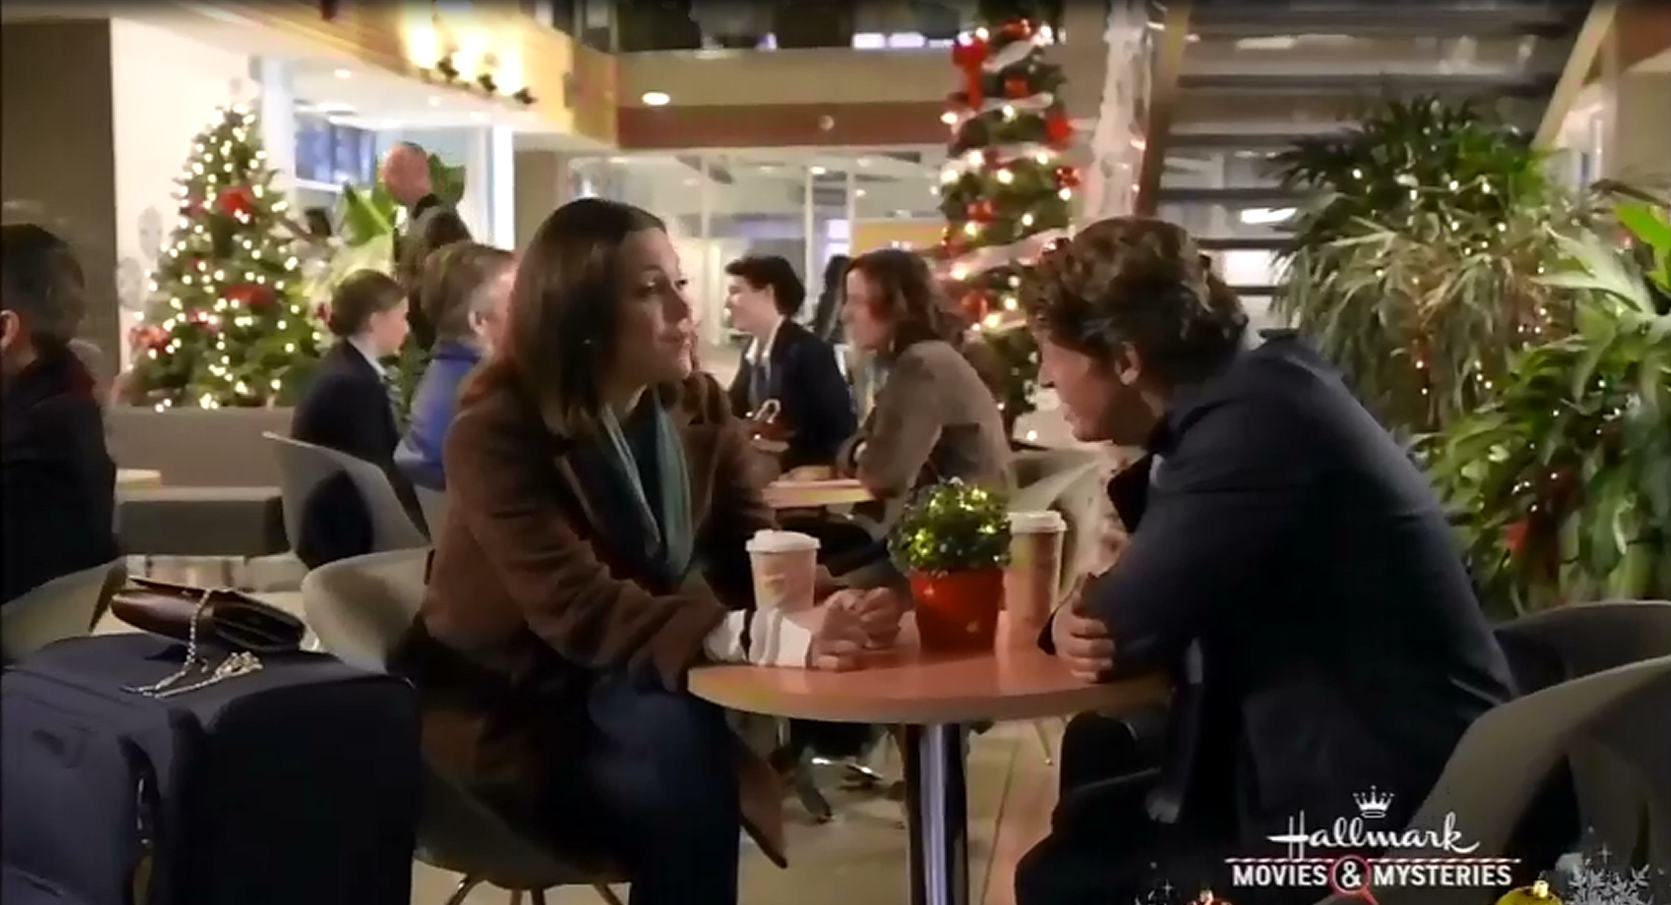 Christmas Movie Filmed In The Sub Airs The Cascade